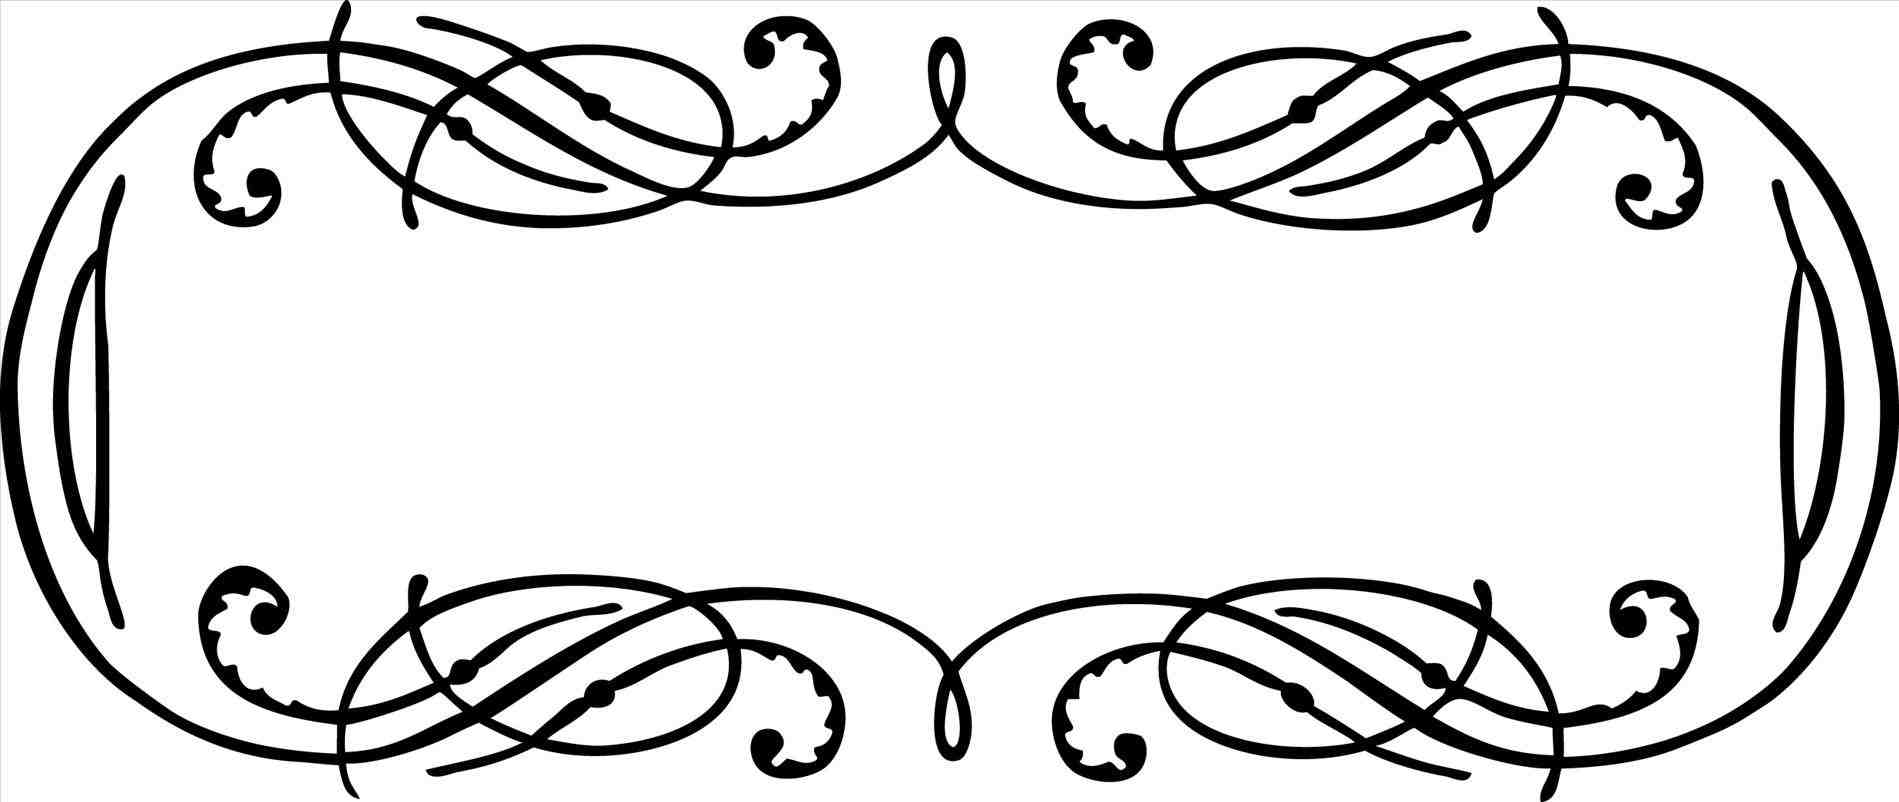 Engagement clipart border, Engagement border Transparent.